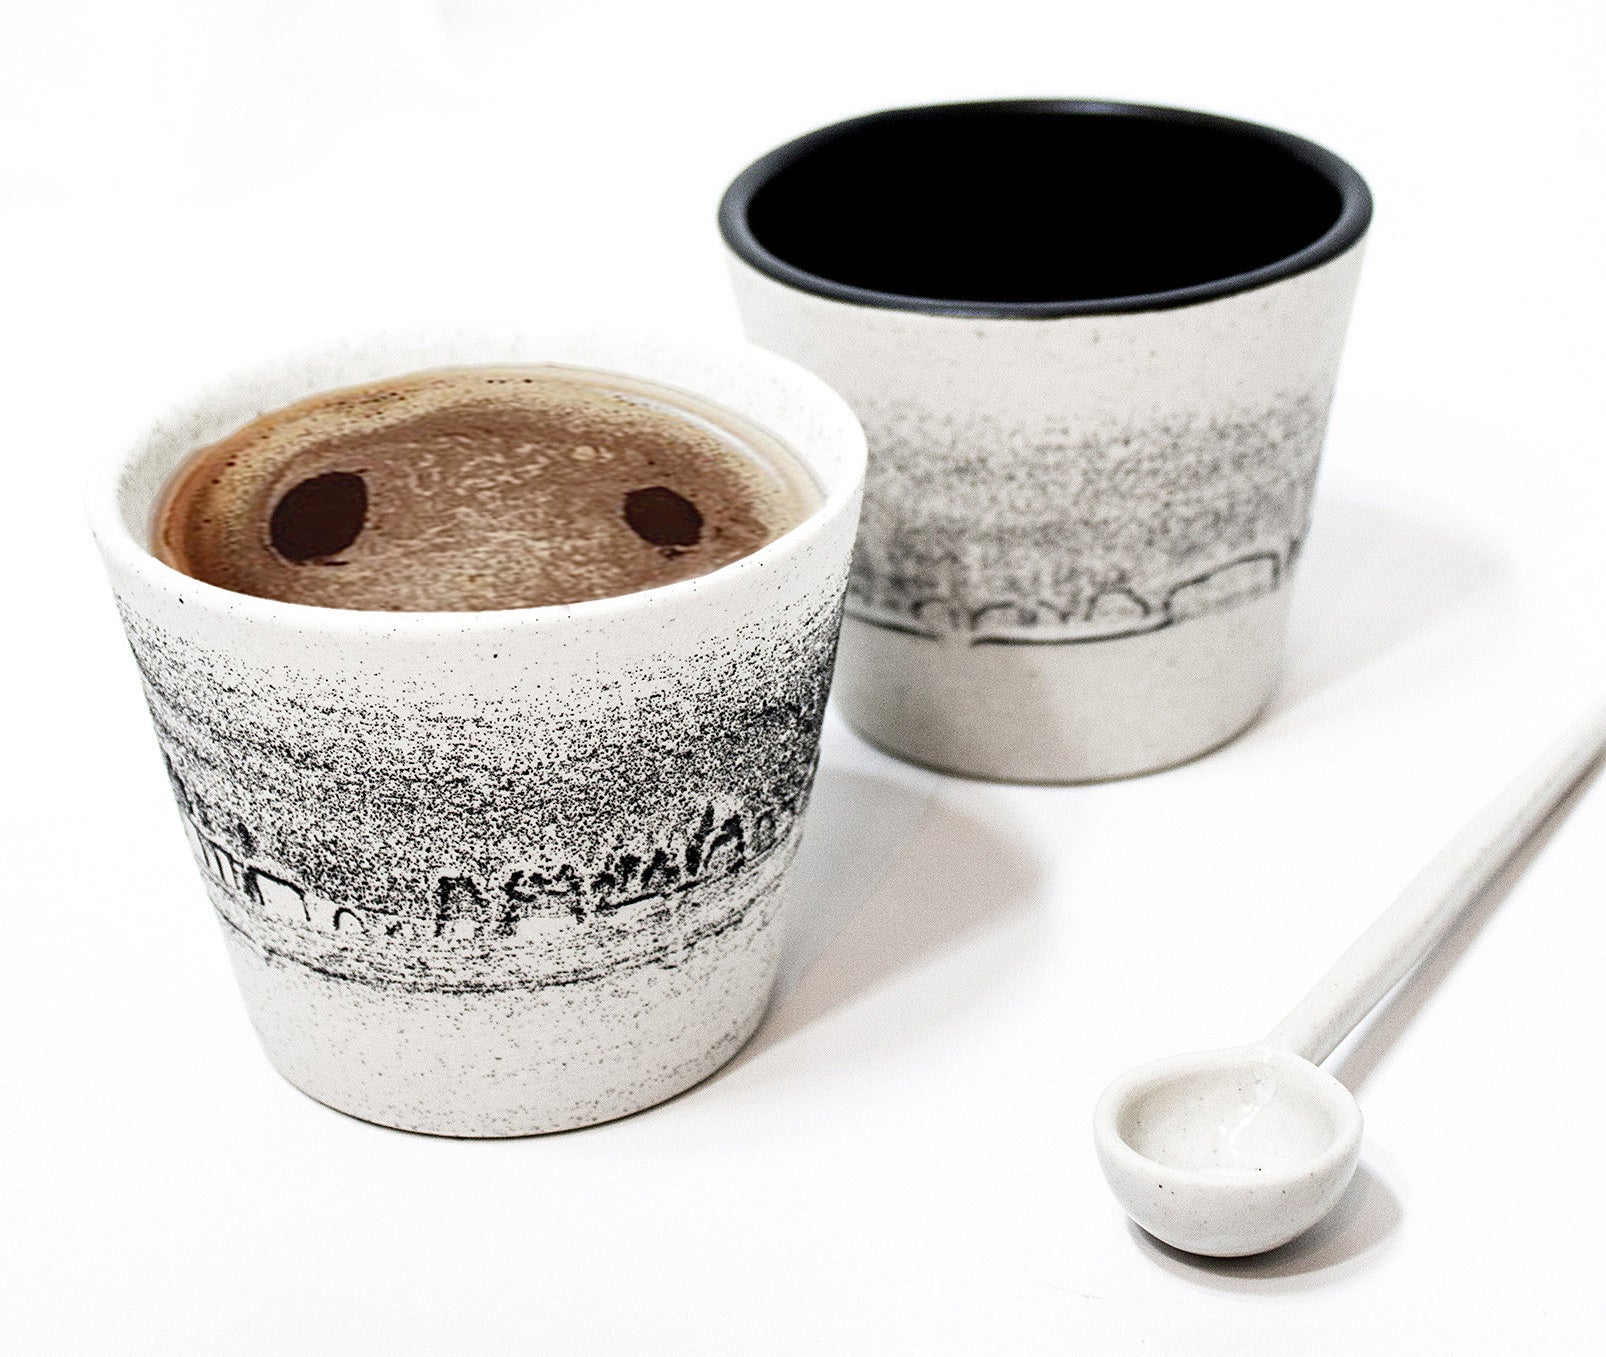 the pair of mugs with one filled with coffee